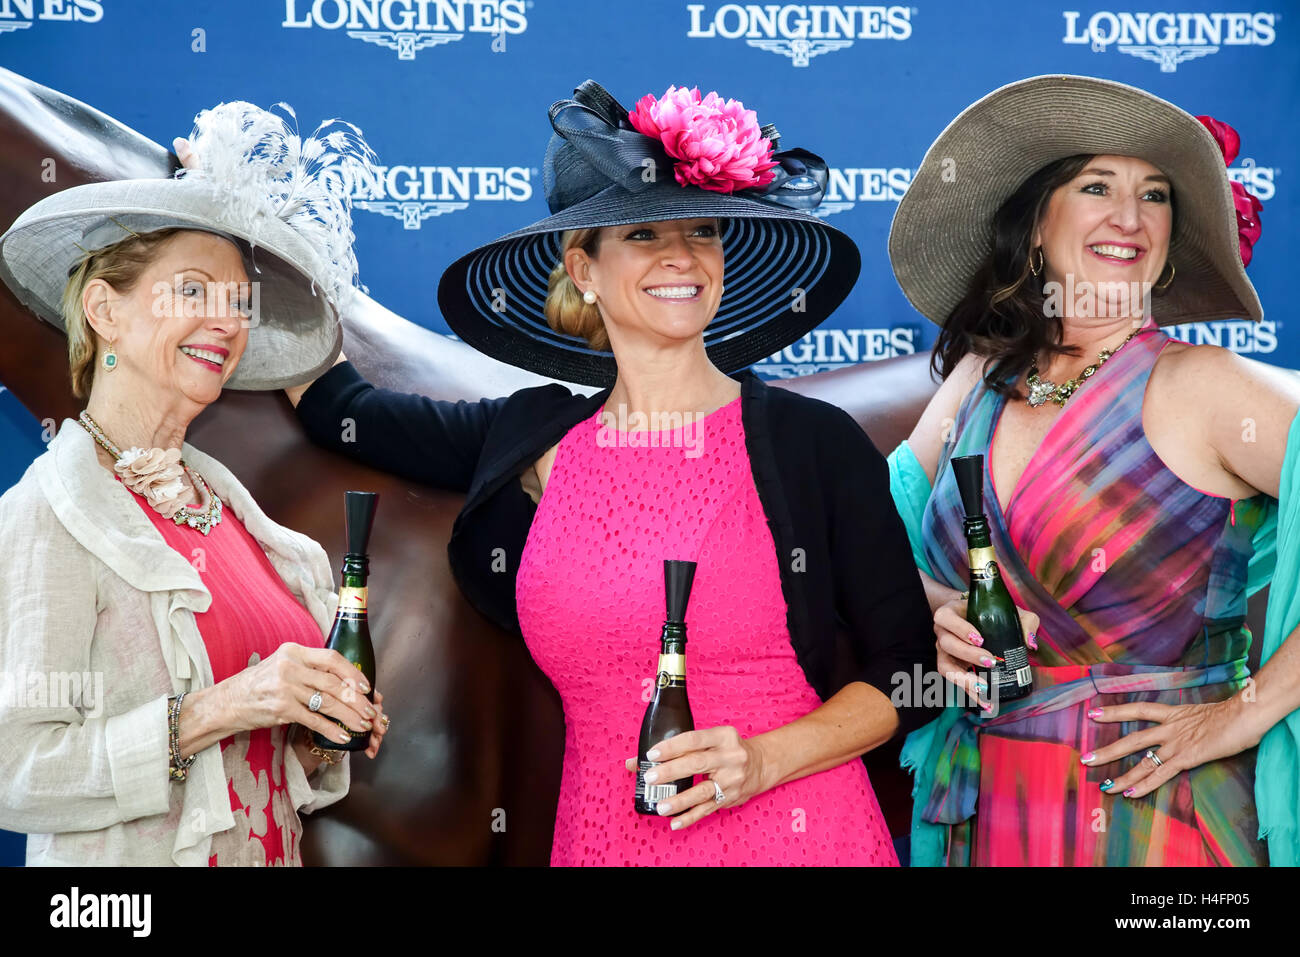 Ladies posing with mini champaign bottles in their Derby Hats at the thoroughbred posing stand. - Stock Image